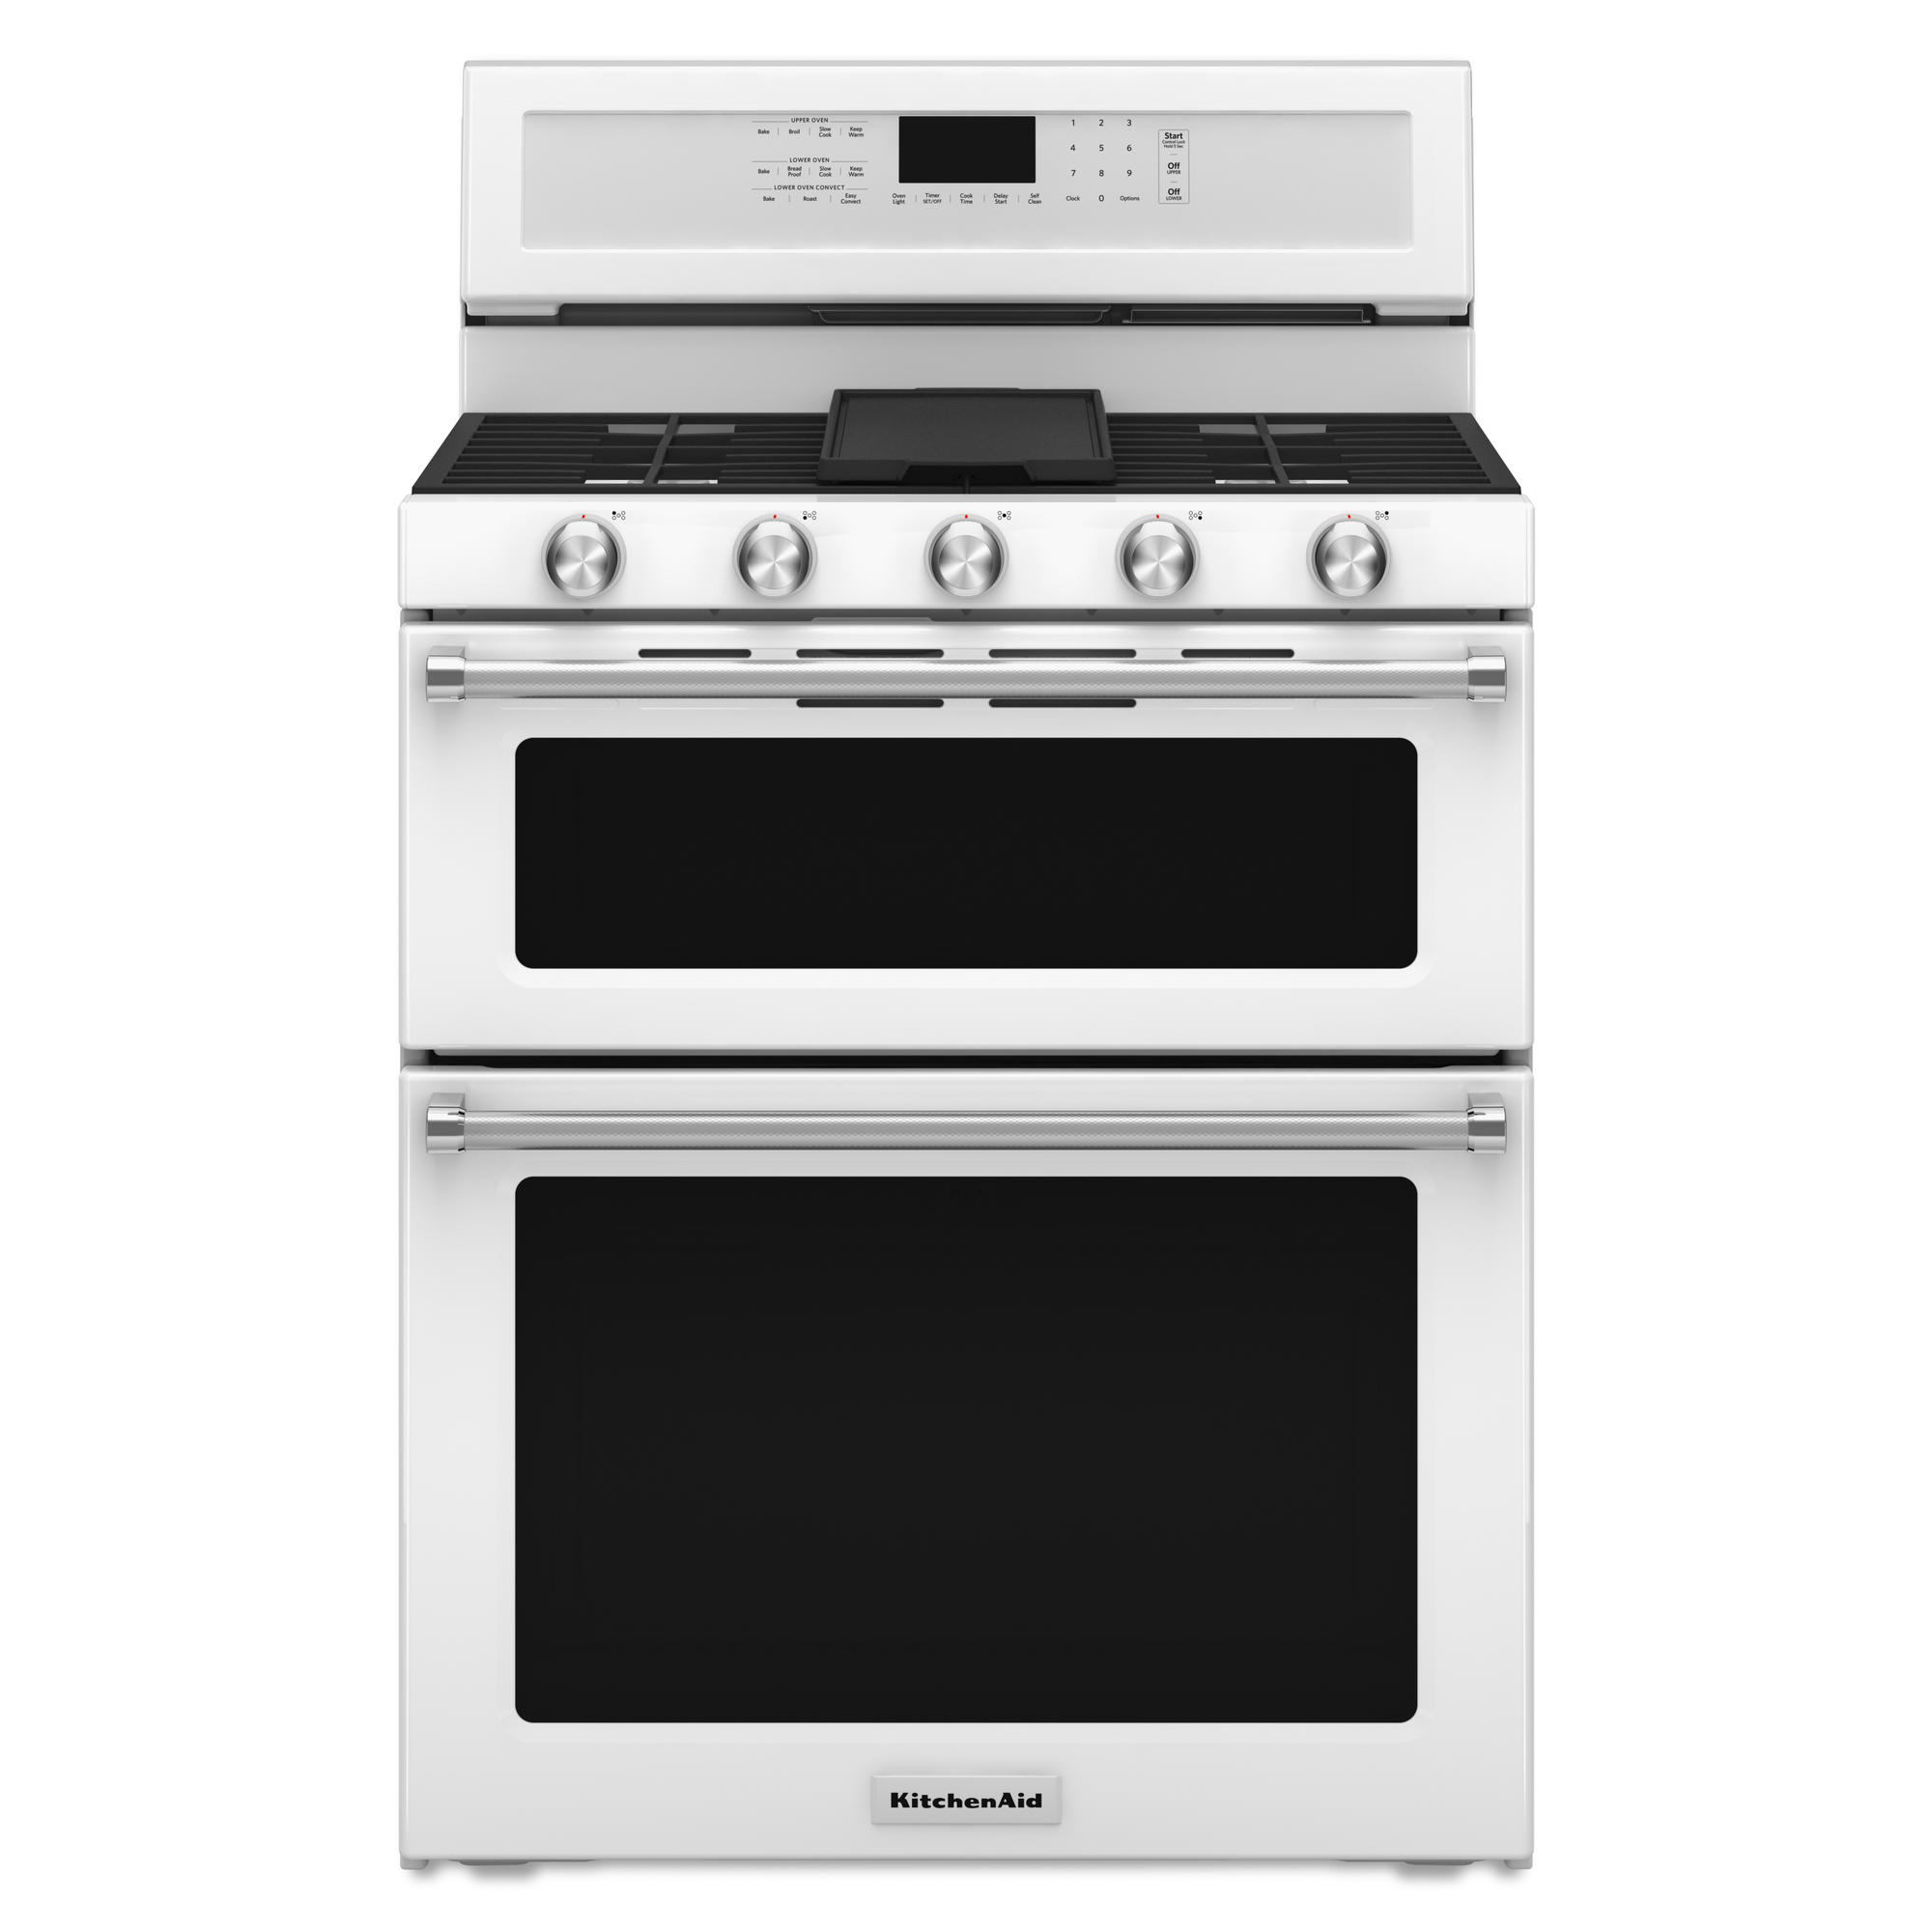 KitchenAid KFGD500EWH 6.0 cu. ft. 5-Burner Gas Double Oven Range - White